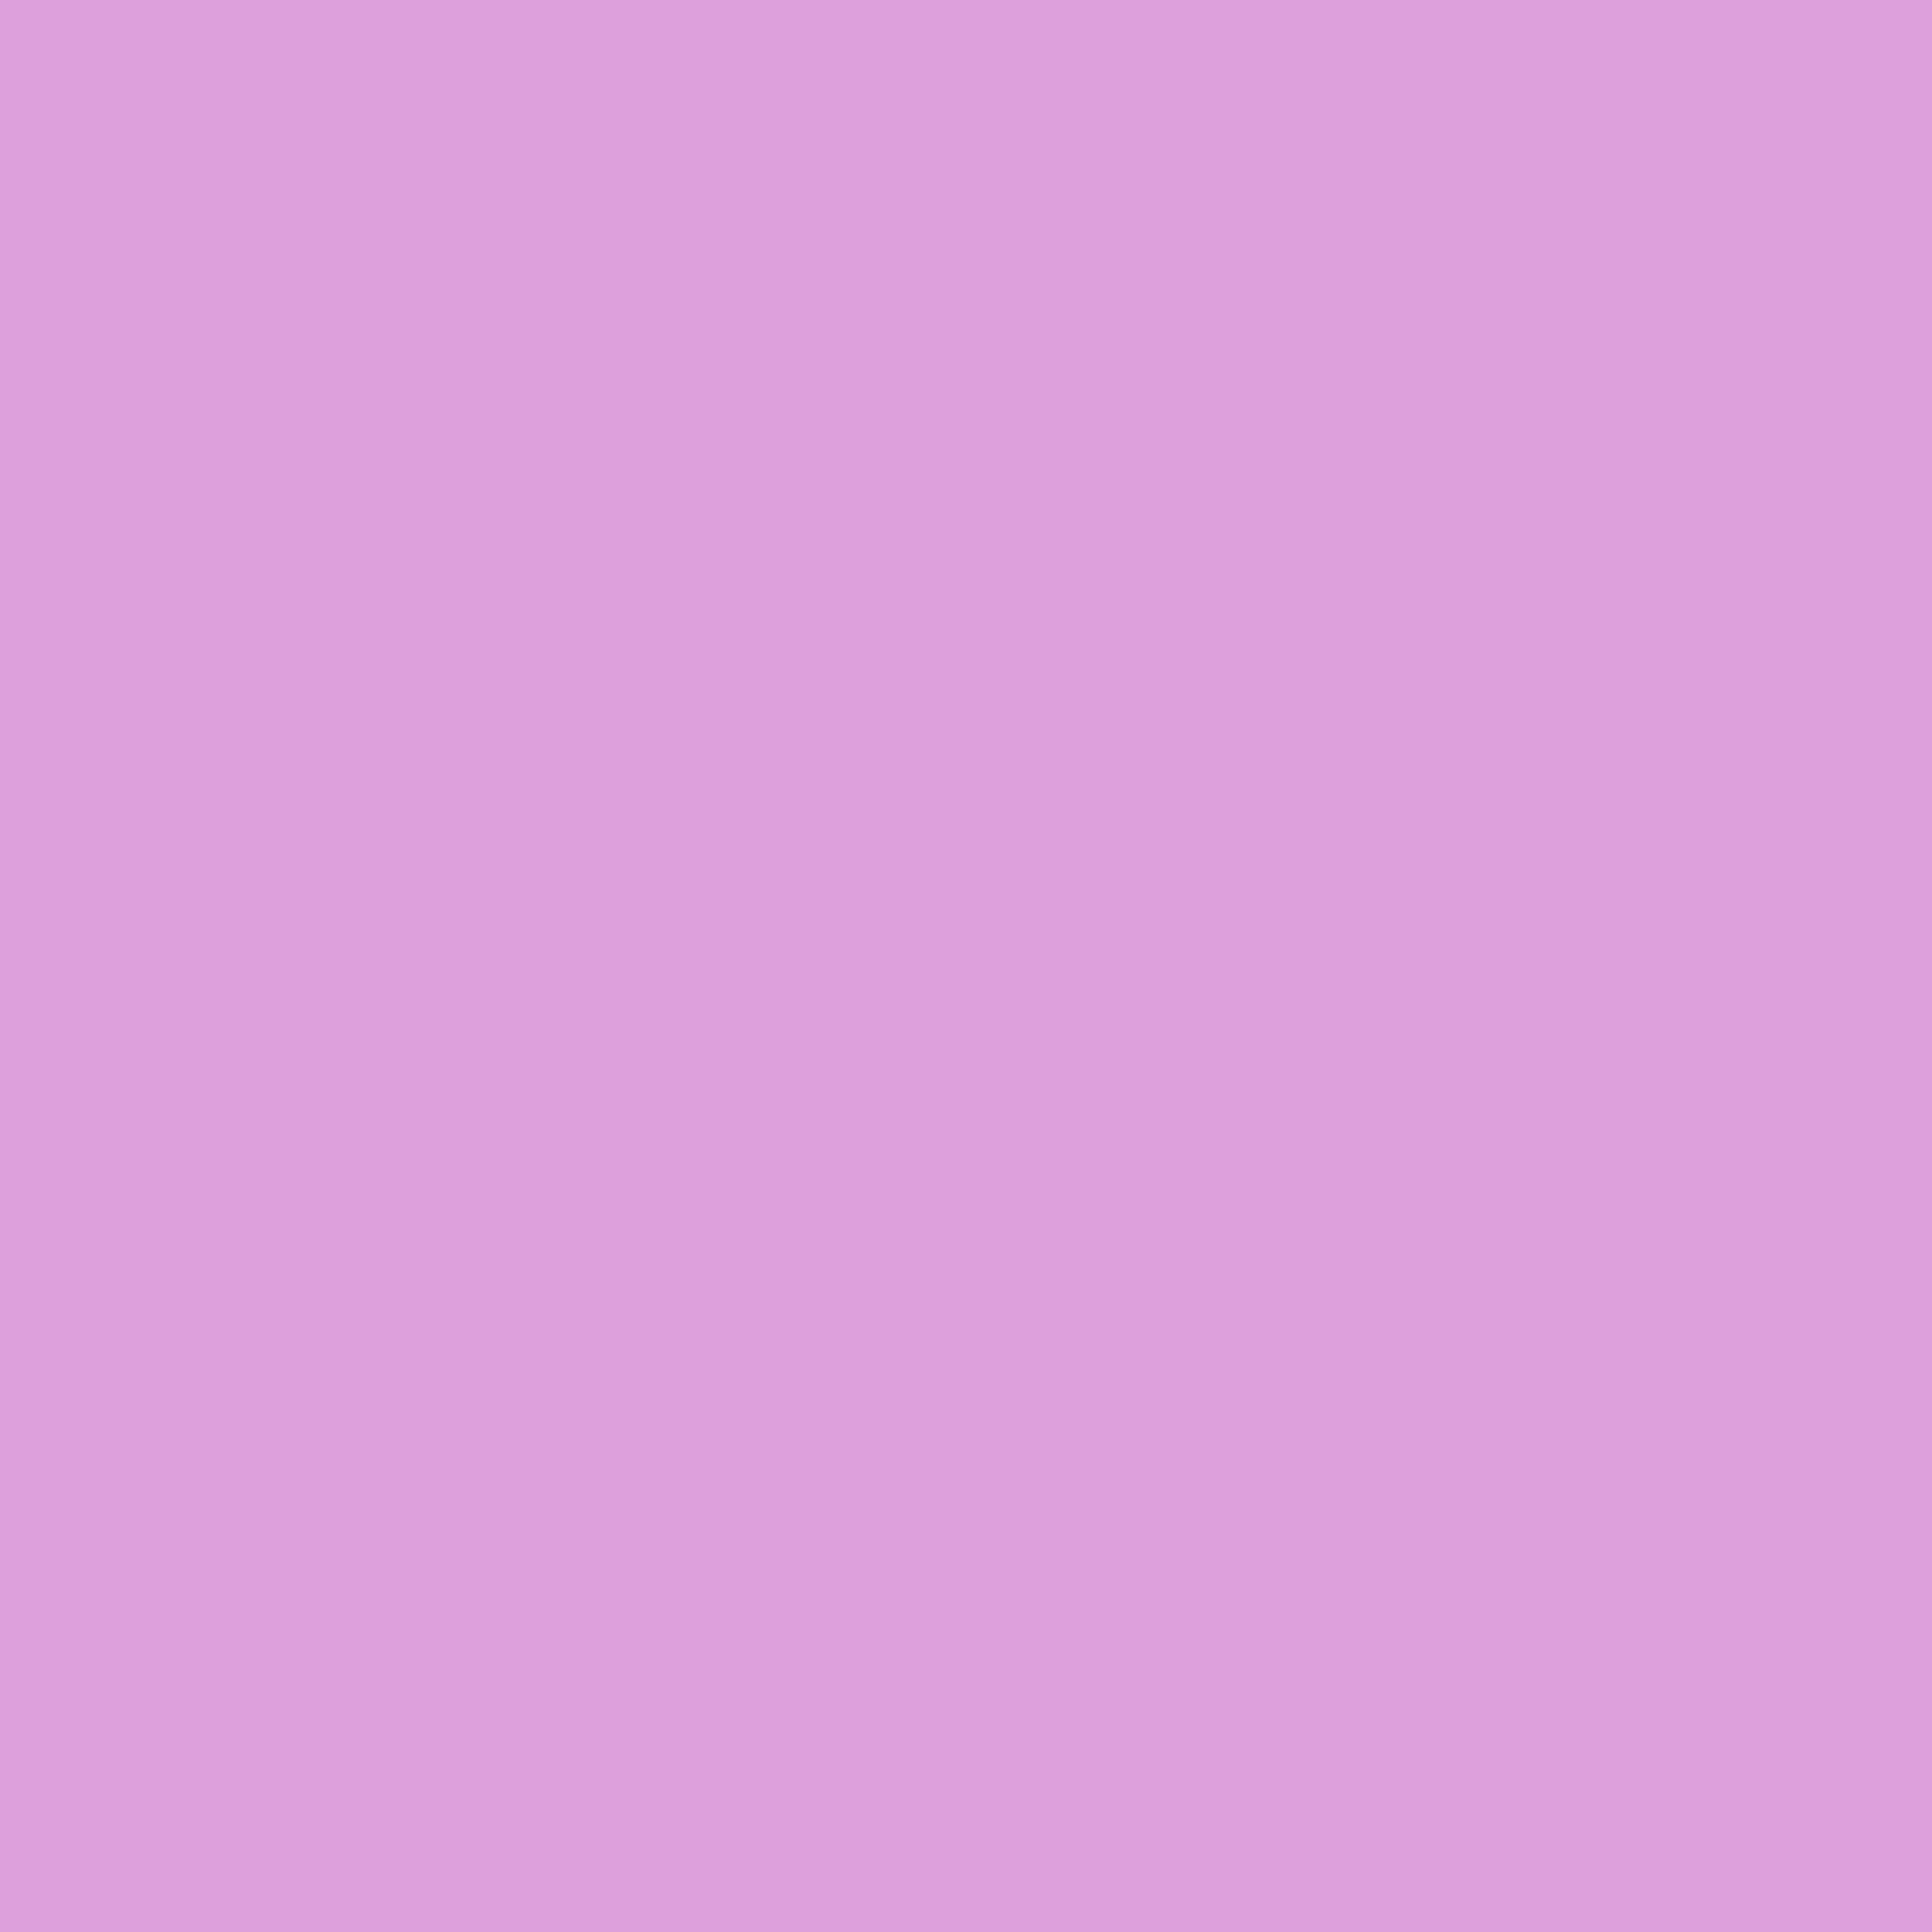 2048x2048 Pale Plum Solid Color Background 2048x2048